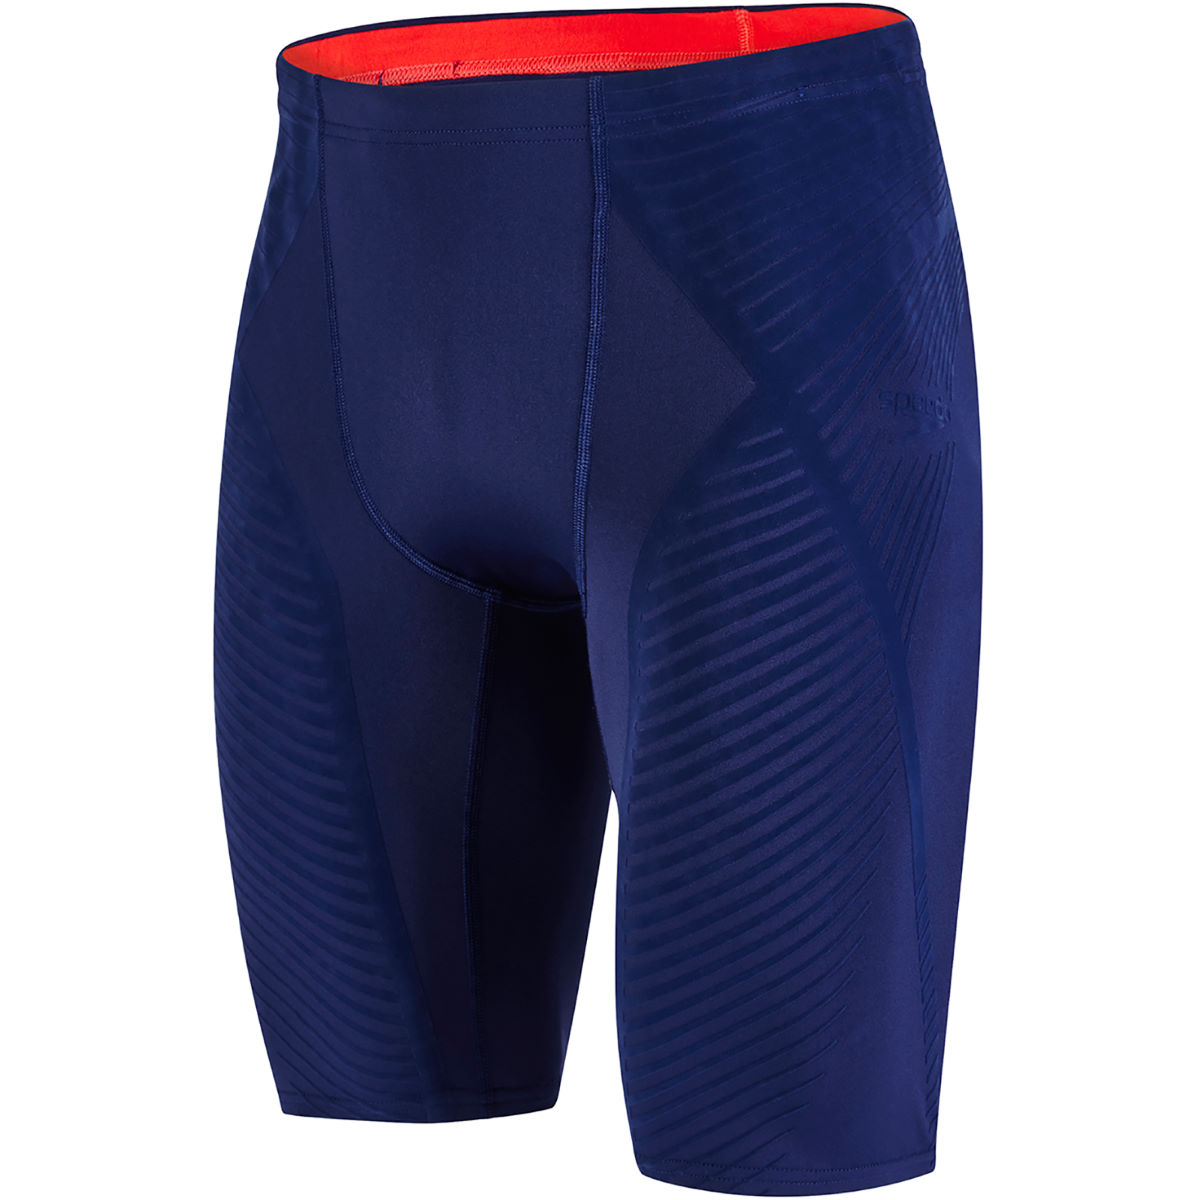 Jammer Speedo Fit Power Form - 34 Navy/Lava Red